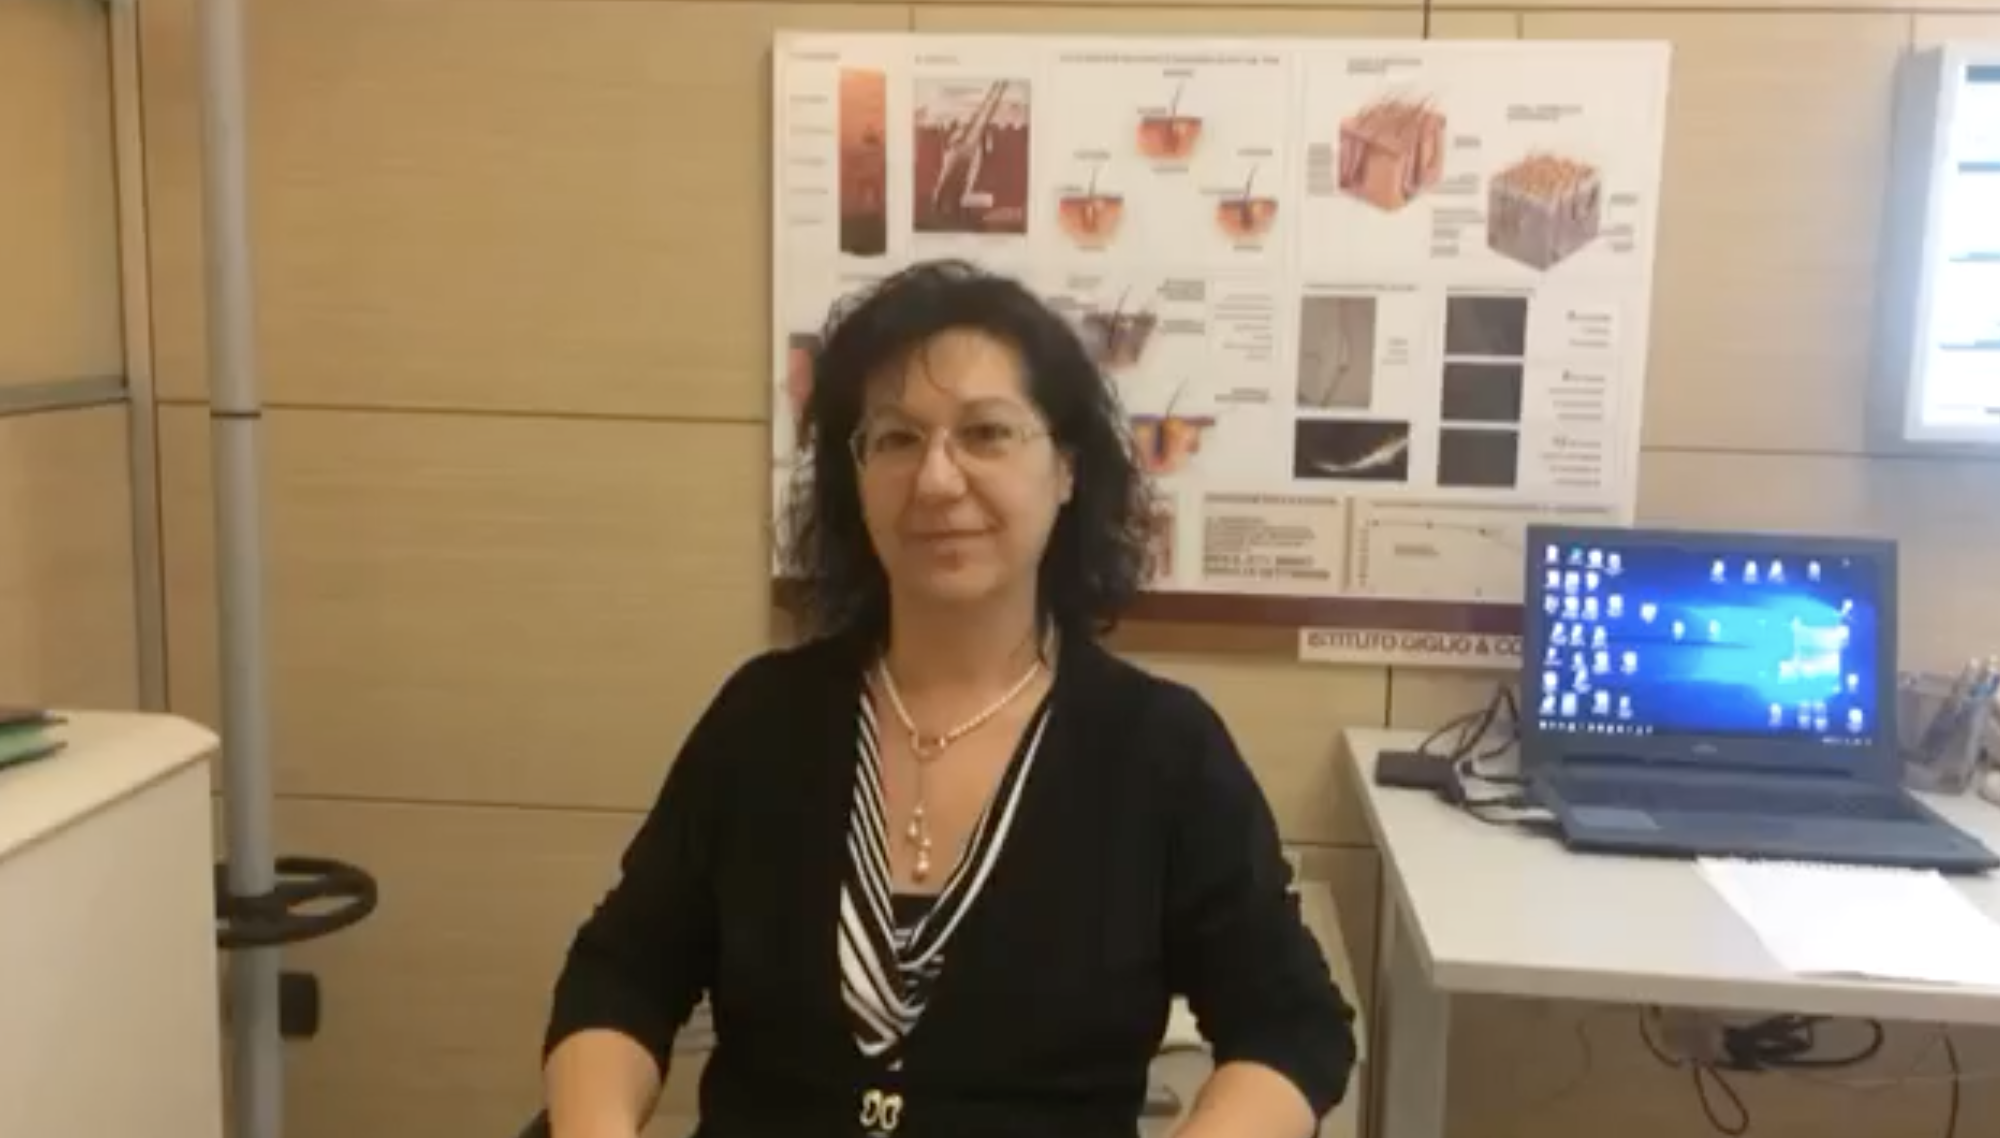 "<a class=""titolopervideom"" href=""https://youtu.be/093Ks3s2mDQ"">Video Testimonianza post trattamento Istituto giglio</a>"